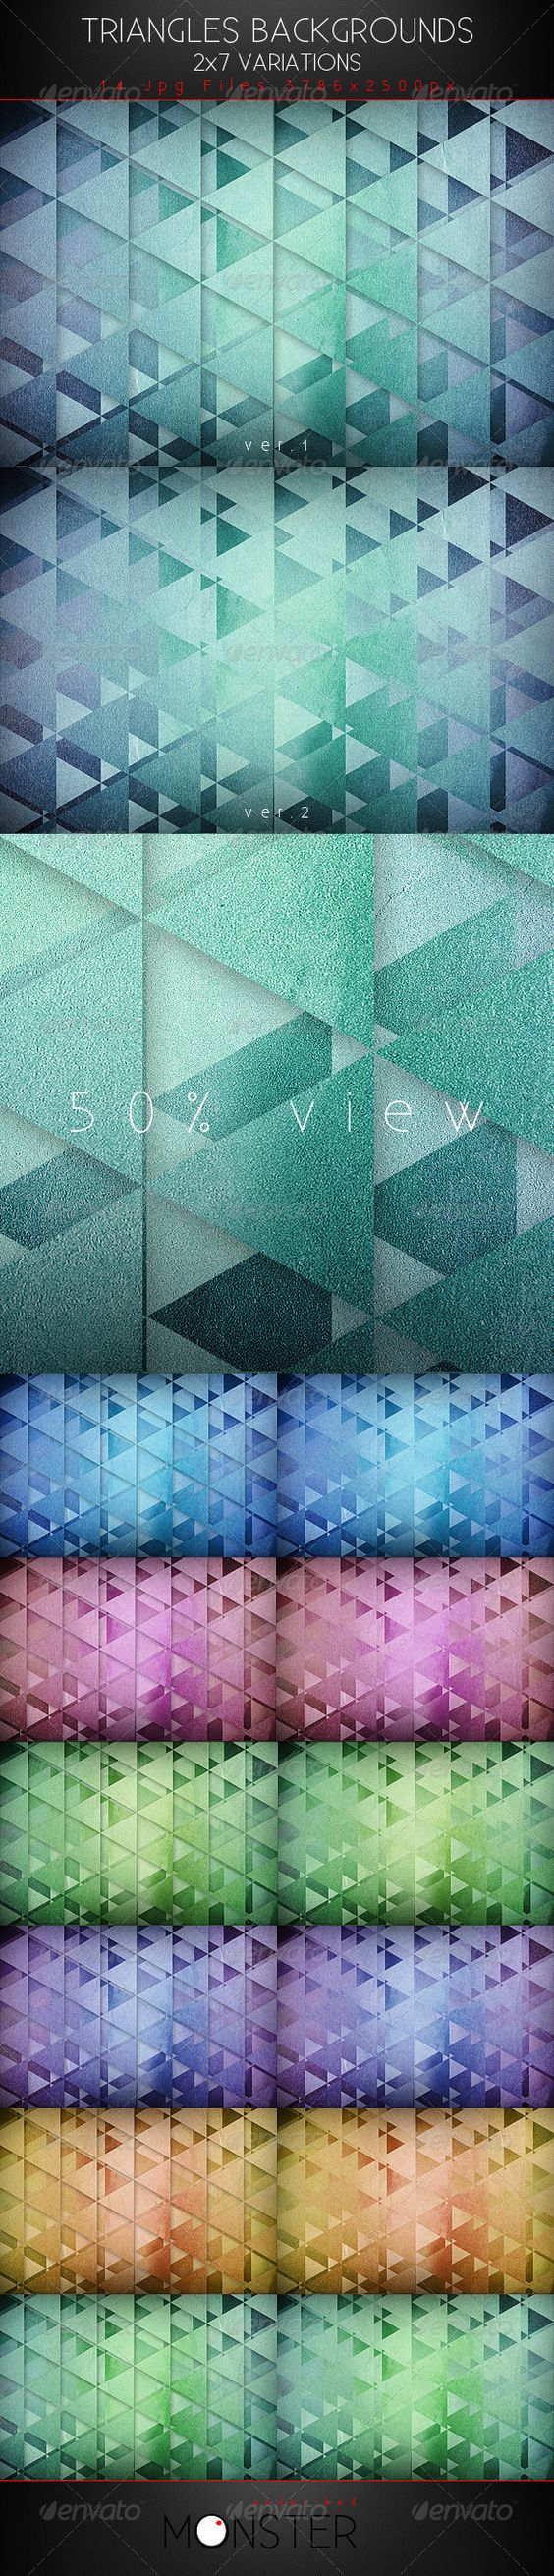 Triangles Backgrounds  #GraphicRiver